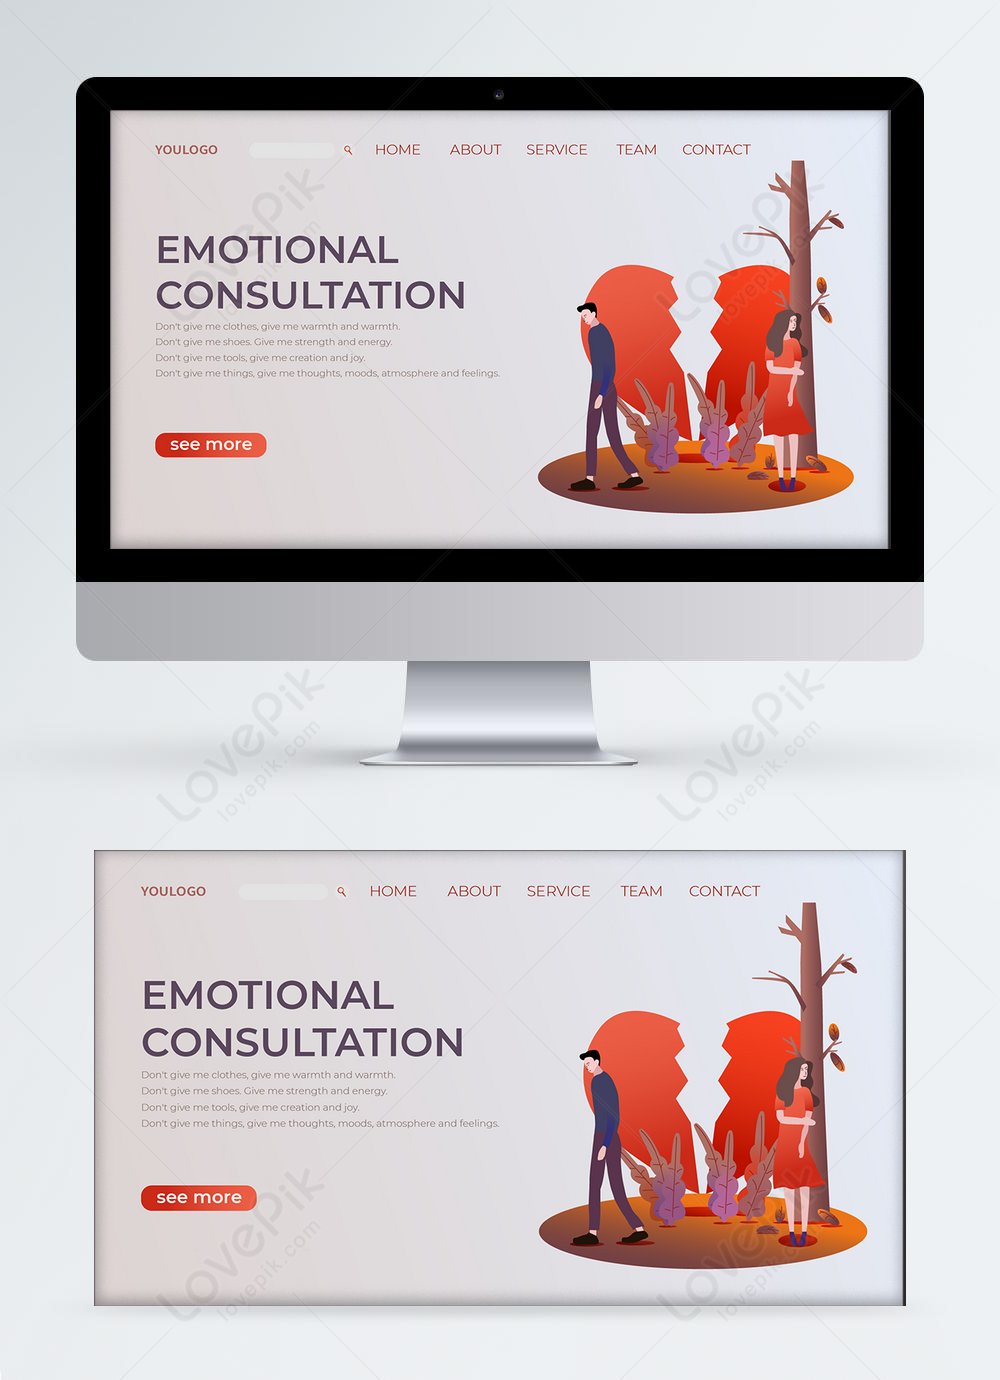 Red Heartbroken Emotion Consulting Website Landing Page Ui Design Template Image Picture Free Download 465501593 Lovepik Com